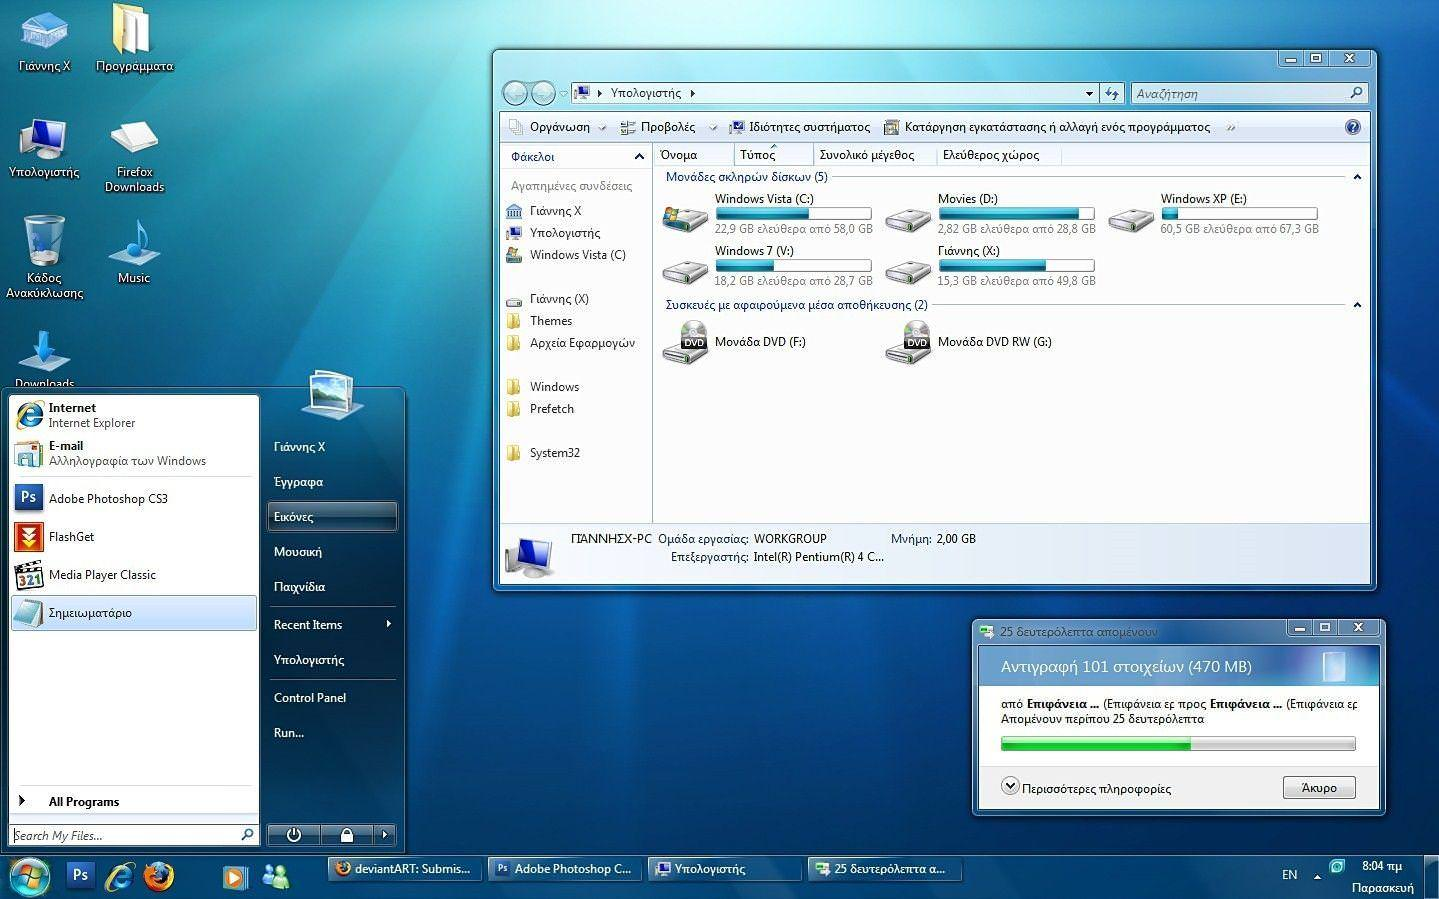 Free Download Master Ultra Iso Full Version For Windows 7